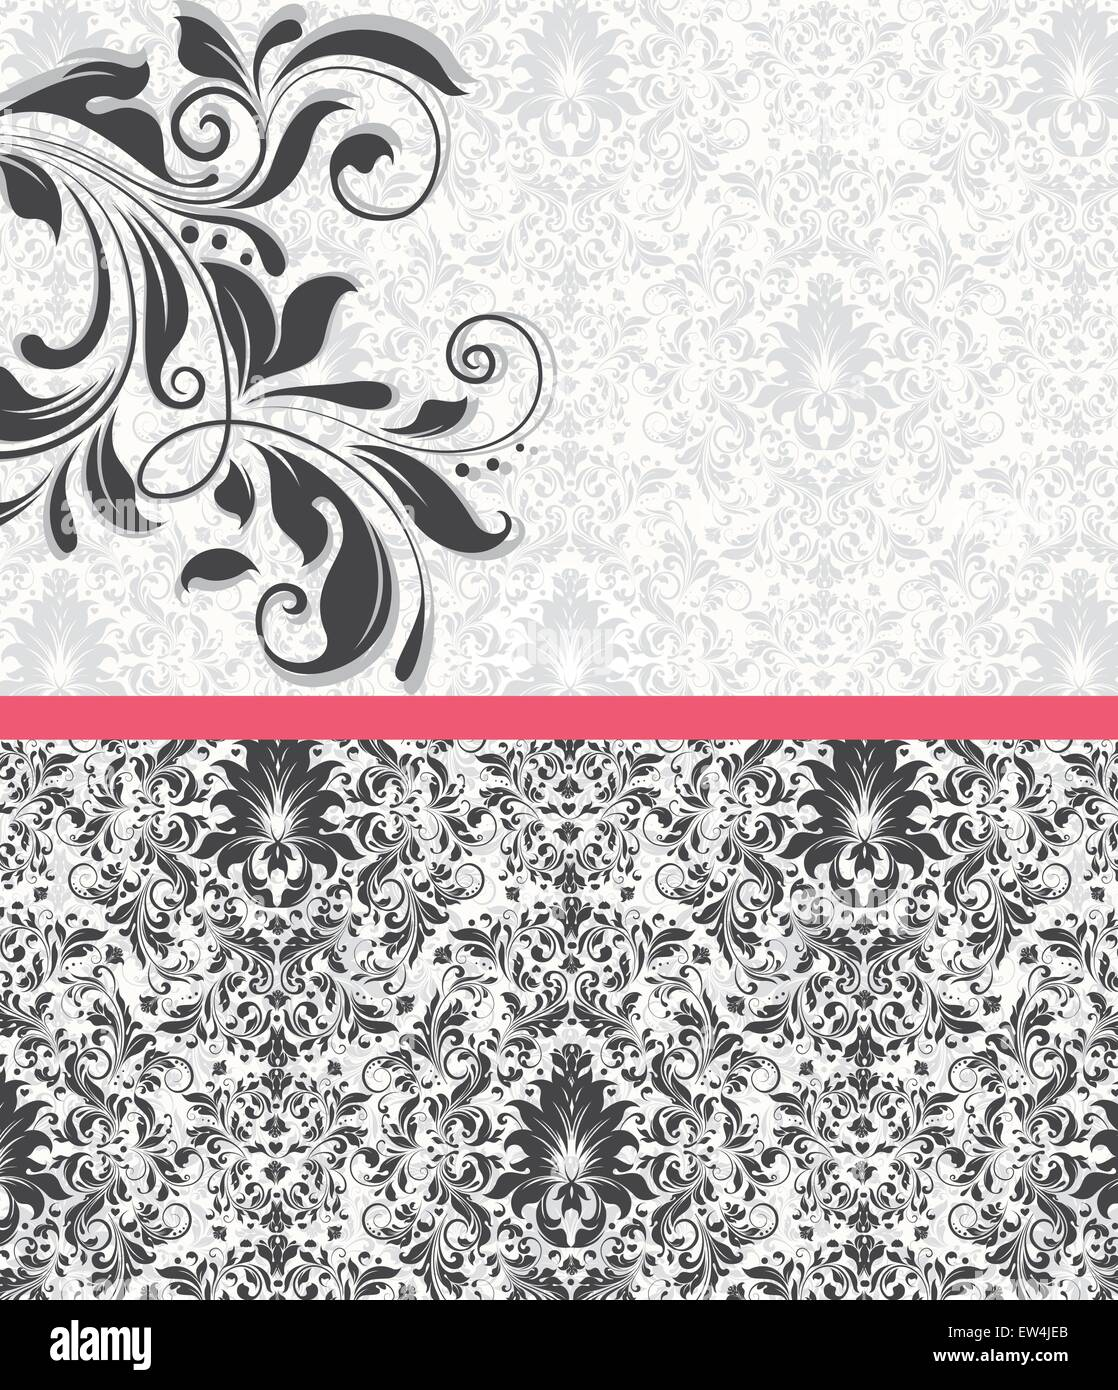 Vintage invitation card with ornate elegant abstract floral design vintage invitation card with ornate elegant abstract floral design gray flowers on pale green and white background with candy pink ribbon vector stopboris Image collections